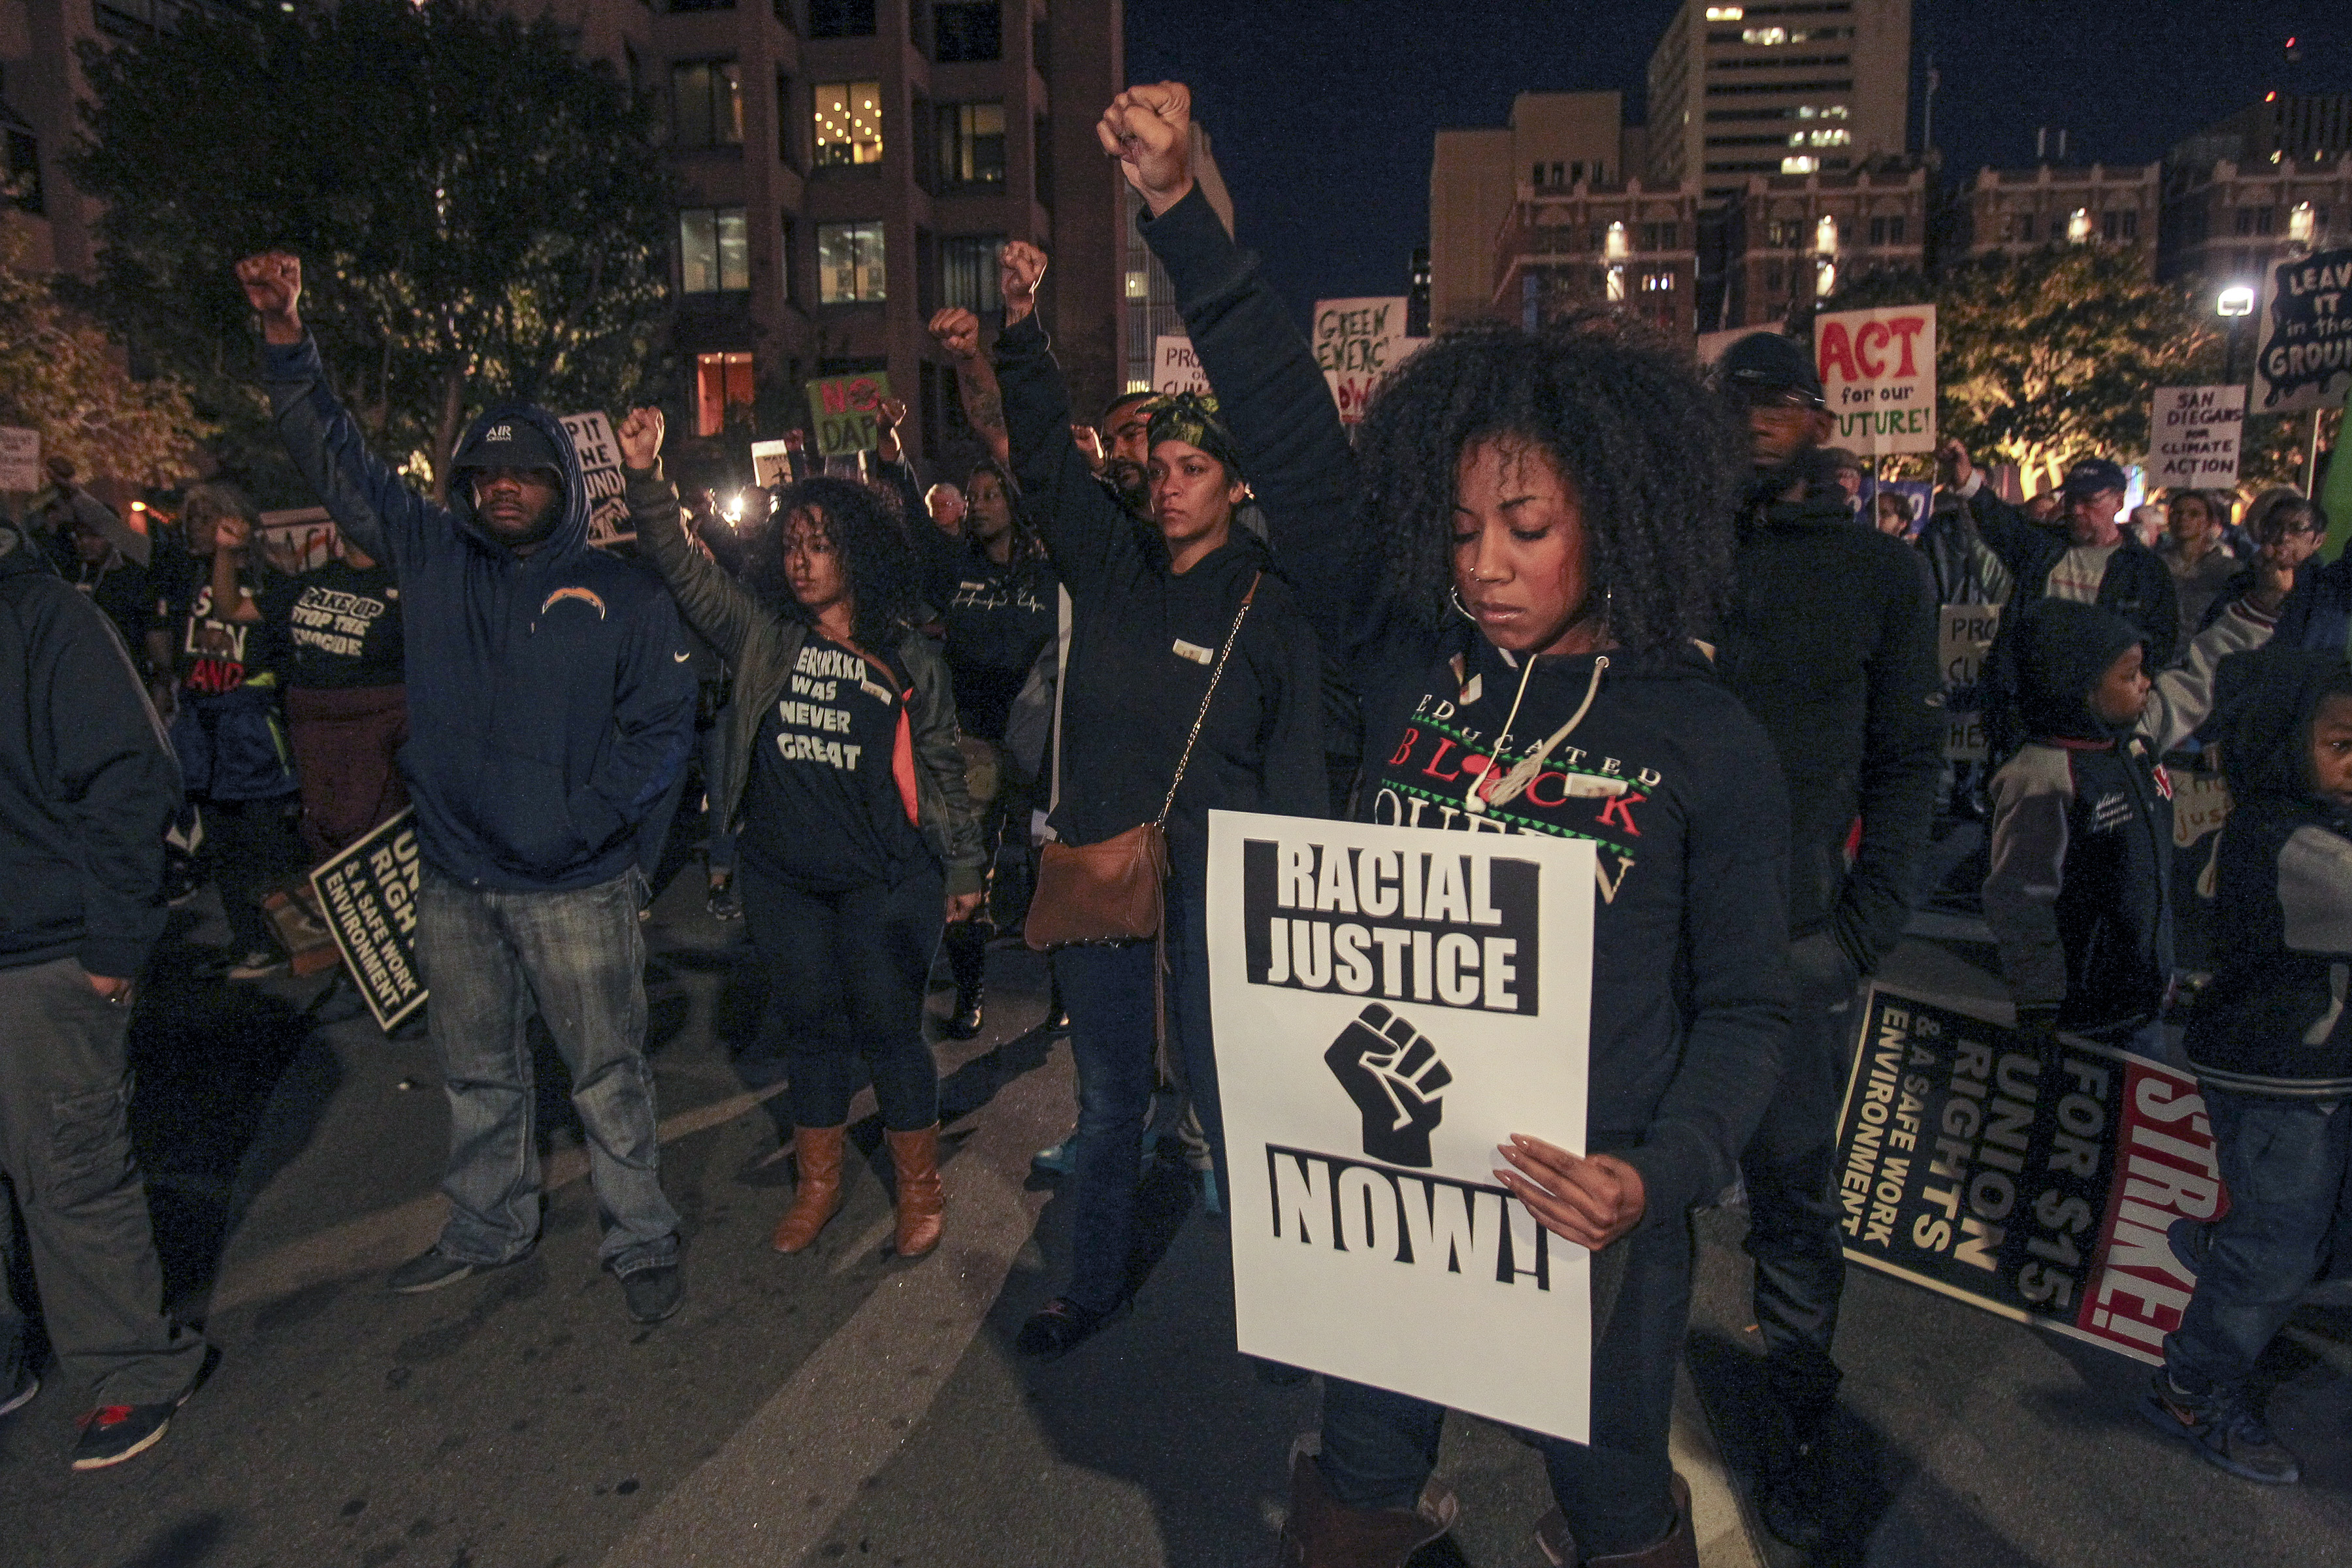 Protesters in San Diego, CA in November 2016 against police brutality